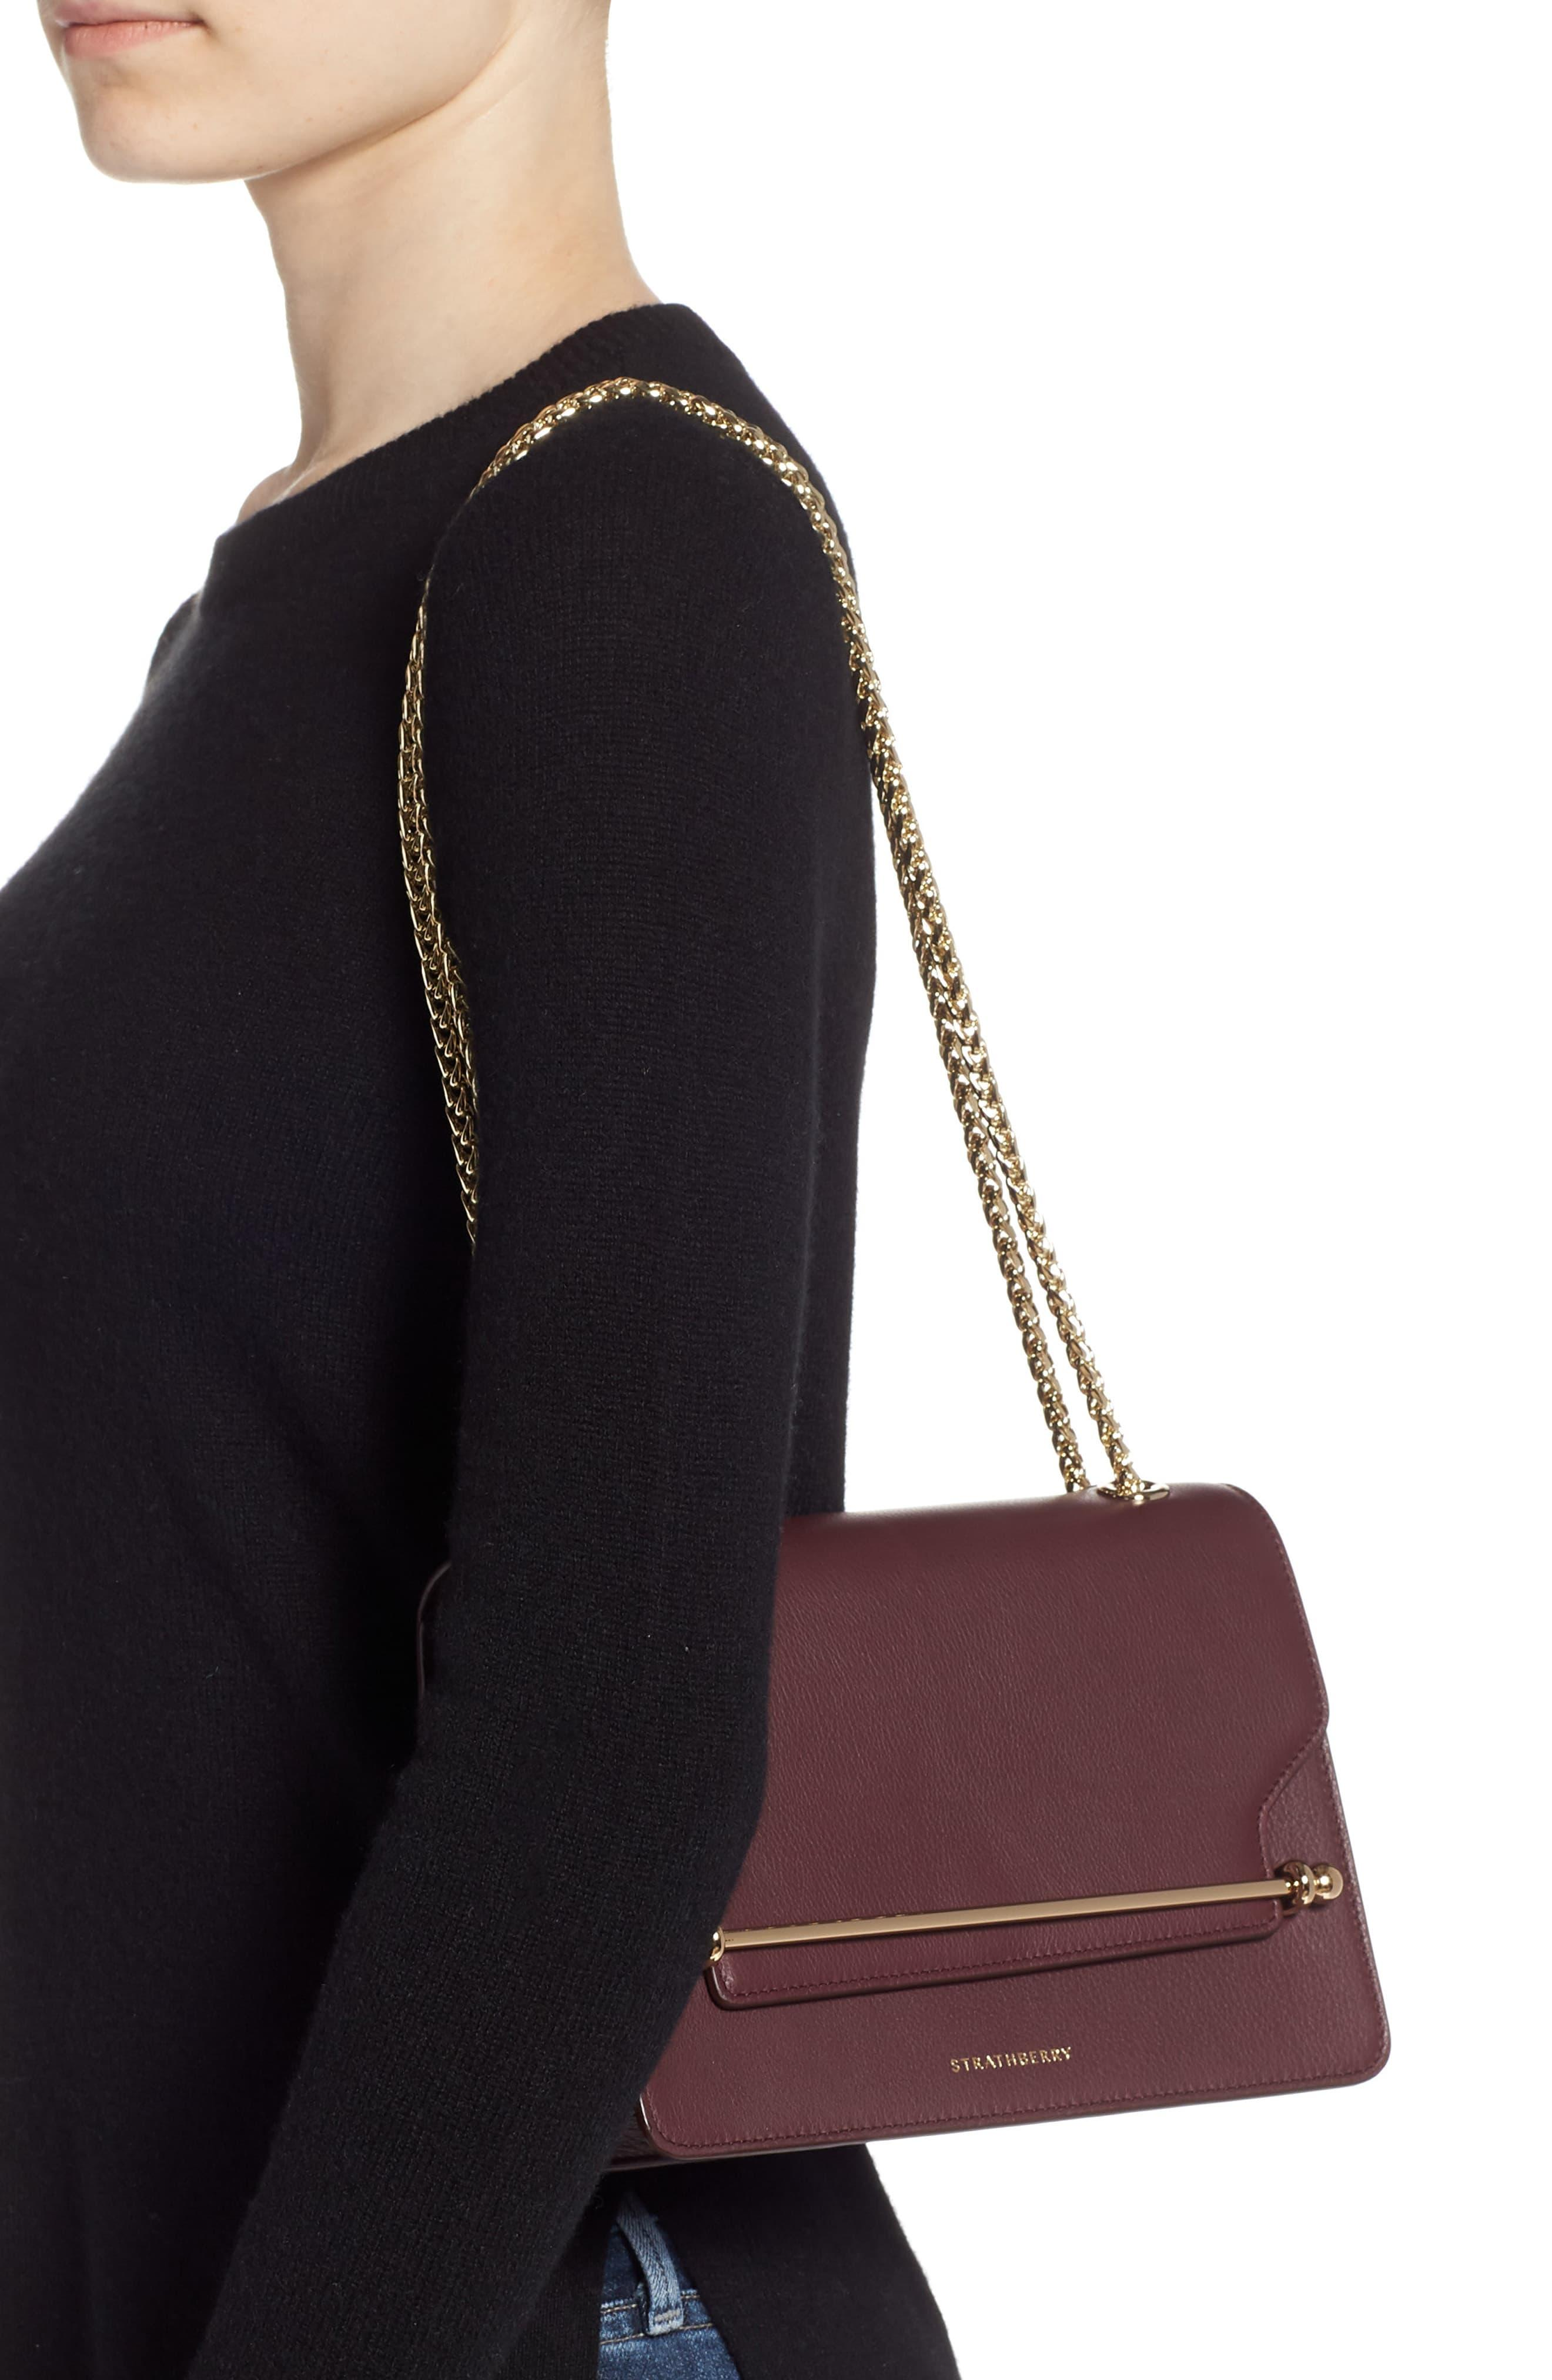 Strathberry East/west Leather Crossbody Bag - Burgundy in Purple - Lyst